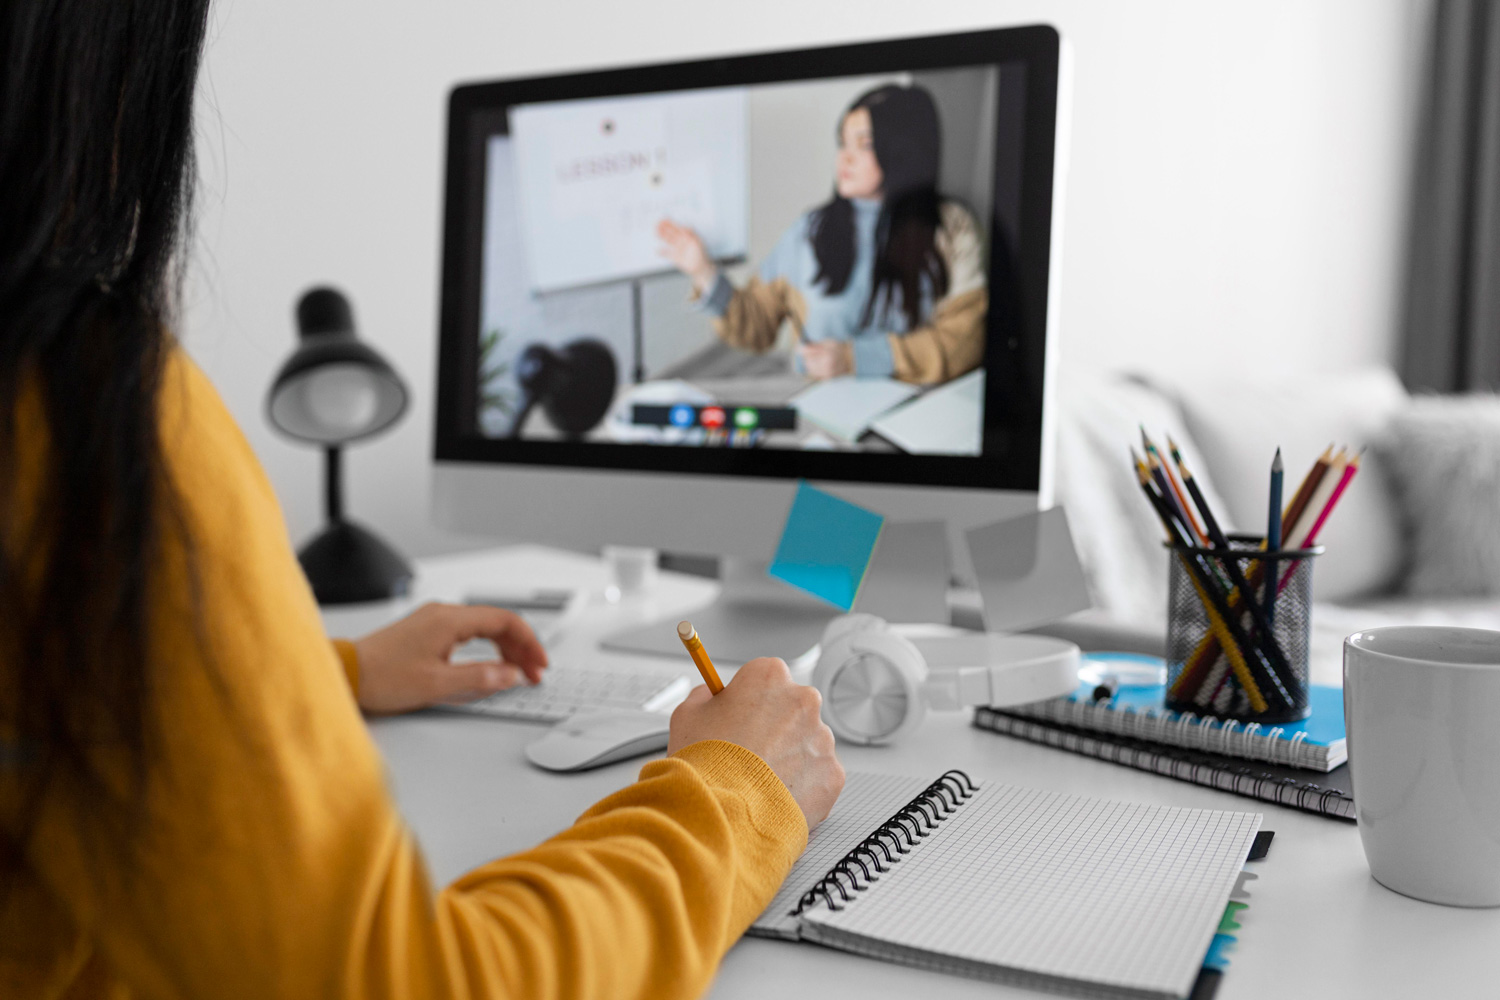 Five Reasons to Take an Online Masters Course In 2021